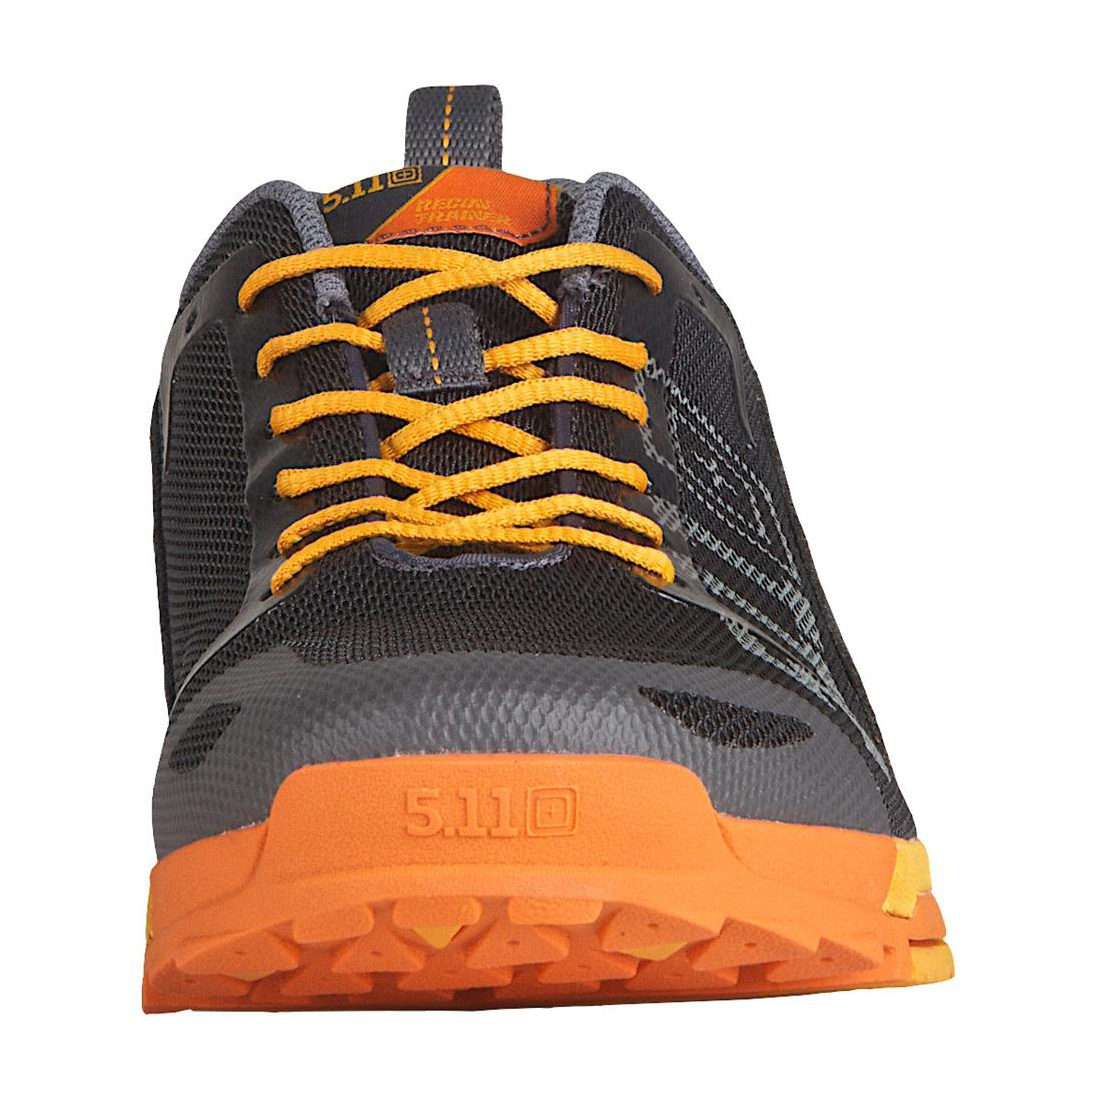 5-11-Recon-Trainer-Lightweight-Athletic-Running-Fitness-Shoes-16001 thumbnail 22